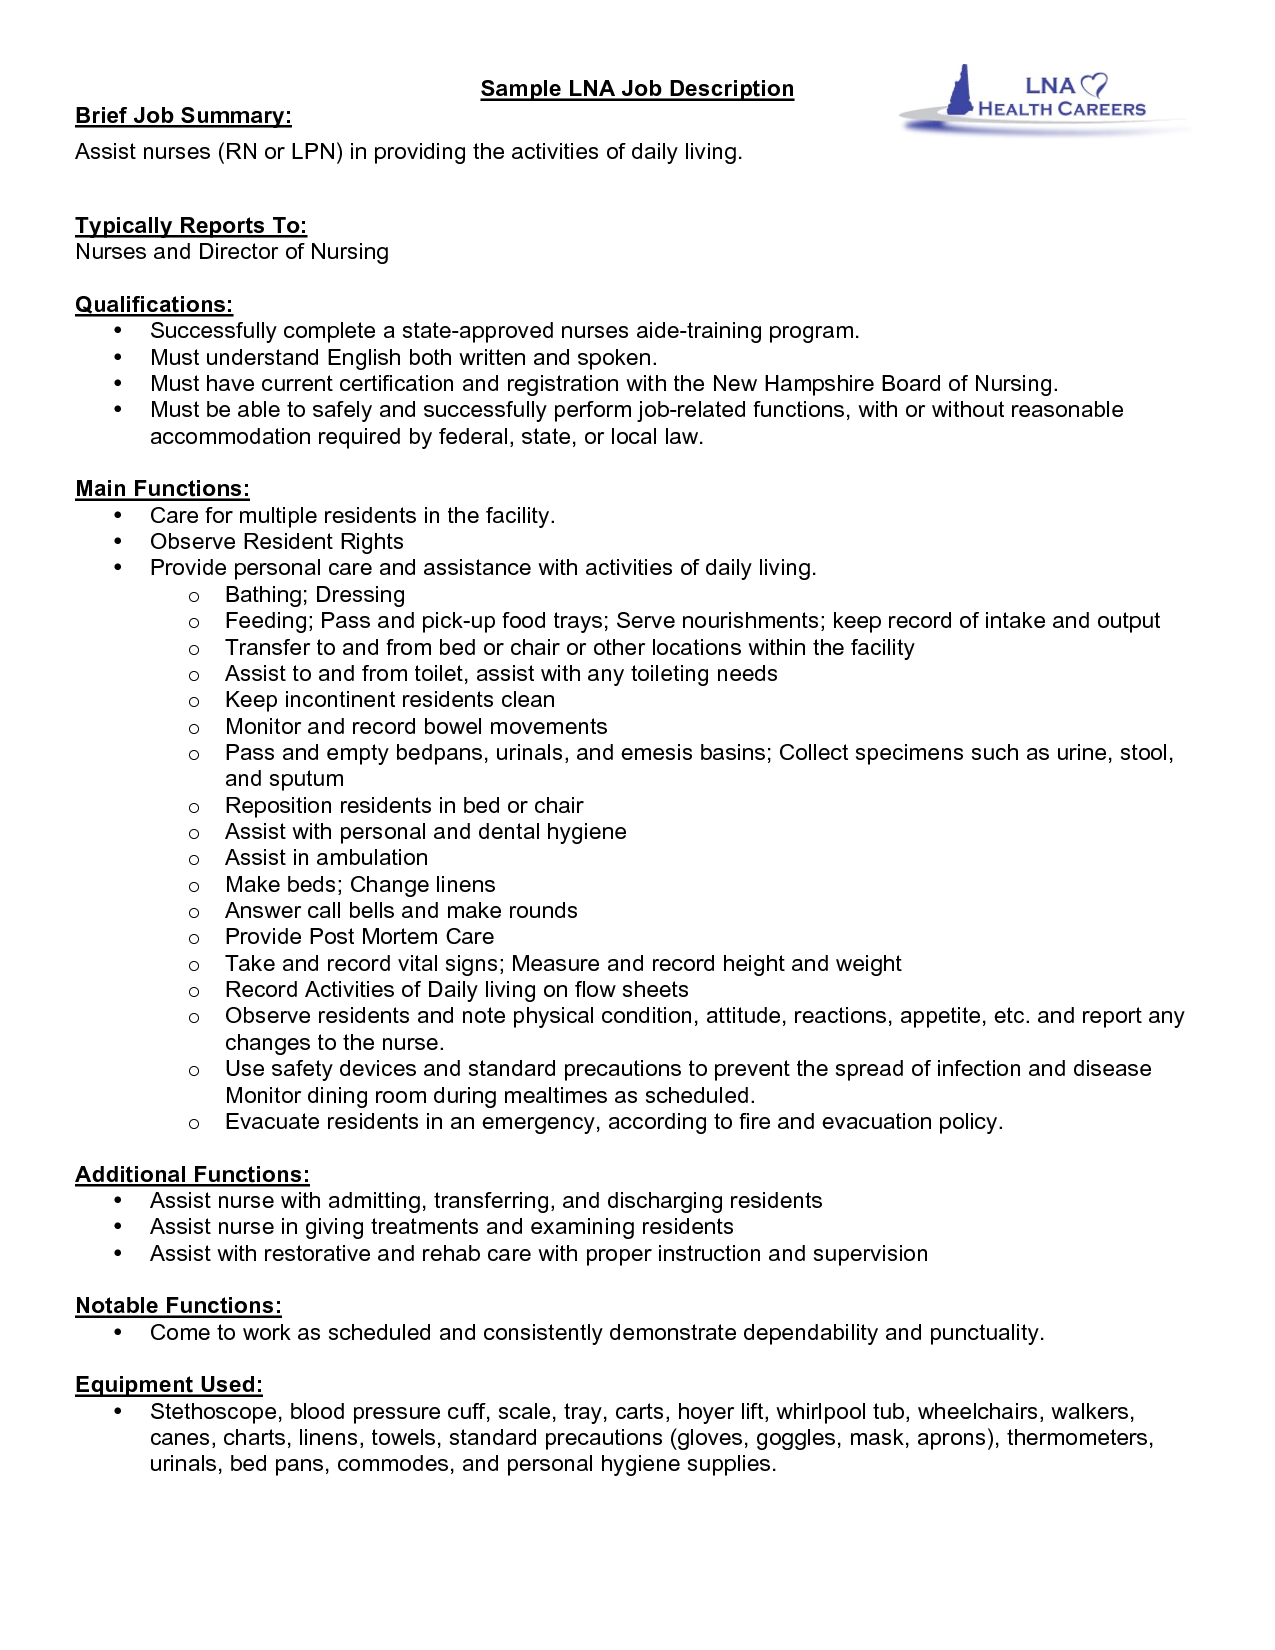 Server Skills Resume Amazing Server Job Resume Description Sample With Professional Servers For Decorating Design